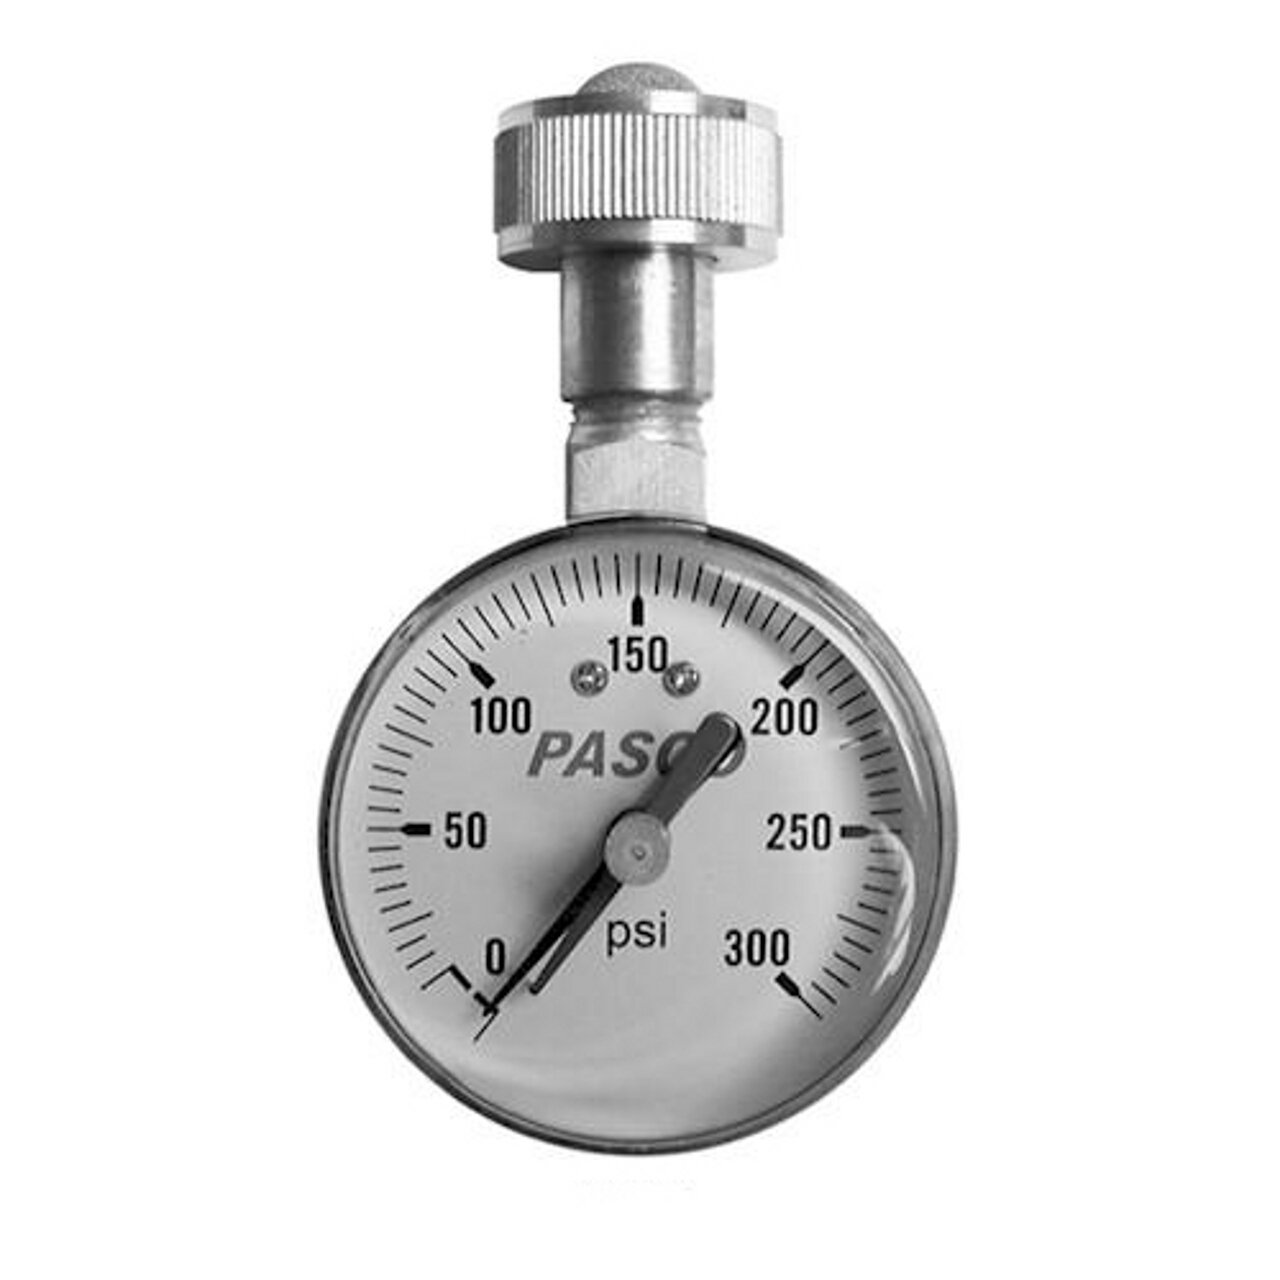 Pasco 1428 0 to 300-Pound Lazy Hand Water Test Gauge Assembly by Pasco